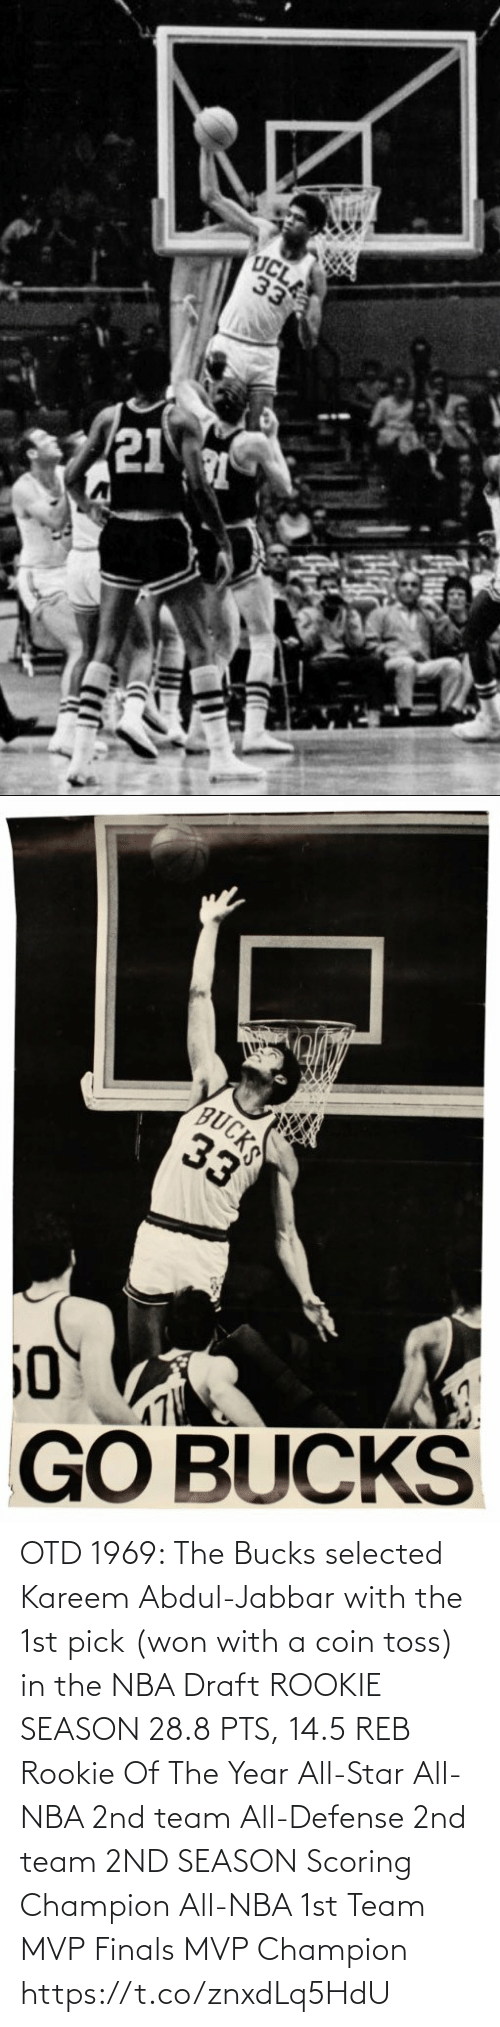 All Star: OTD 1969: The Bucks selected Kareem Abdul-Jabbar with the 1st pick (won with a coin toss) in the NBA Draft   ROOKIE SEASON 28.8 PTS, 14.5 REB Rookie Of The Year All-Star All-NBA 2nd team All-Defense 2nd team  2ND SEASON Scoring Champion All-NBA 1st Team MVP Finals MVP Champion https://t.co/znxdLq5HdU